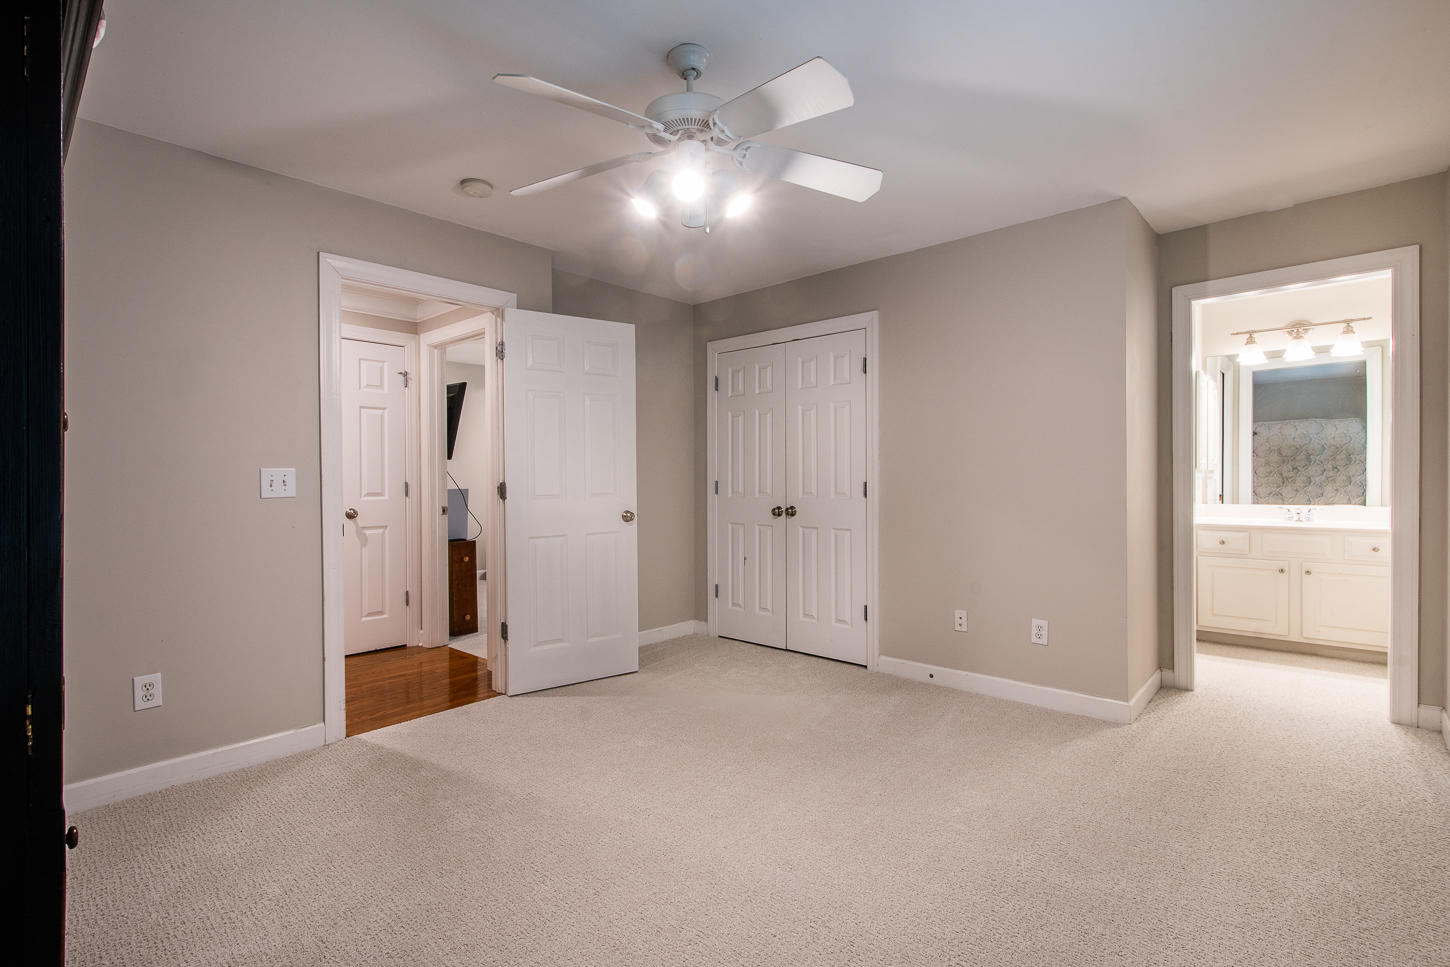 Dunes West Homes For Sale - 1794 Shell Ring, Mount Pleasant, SC - 25